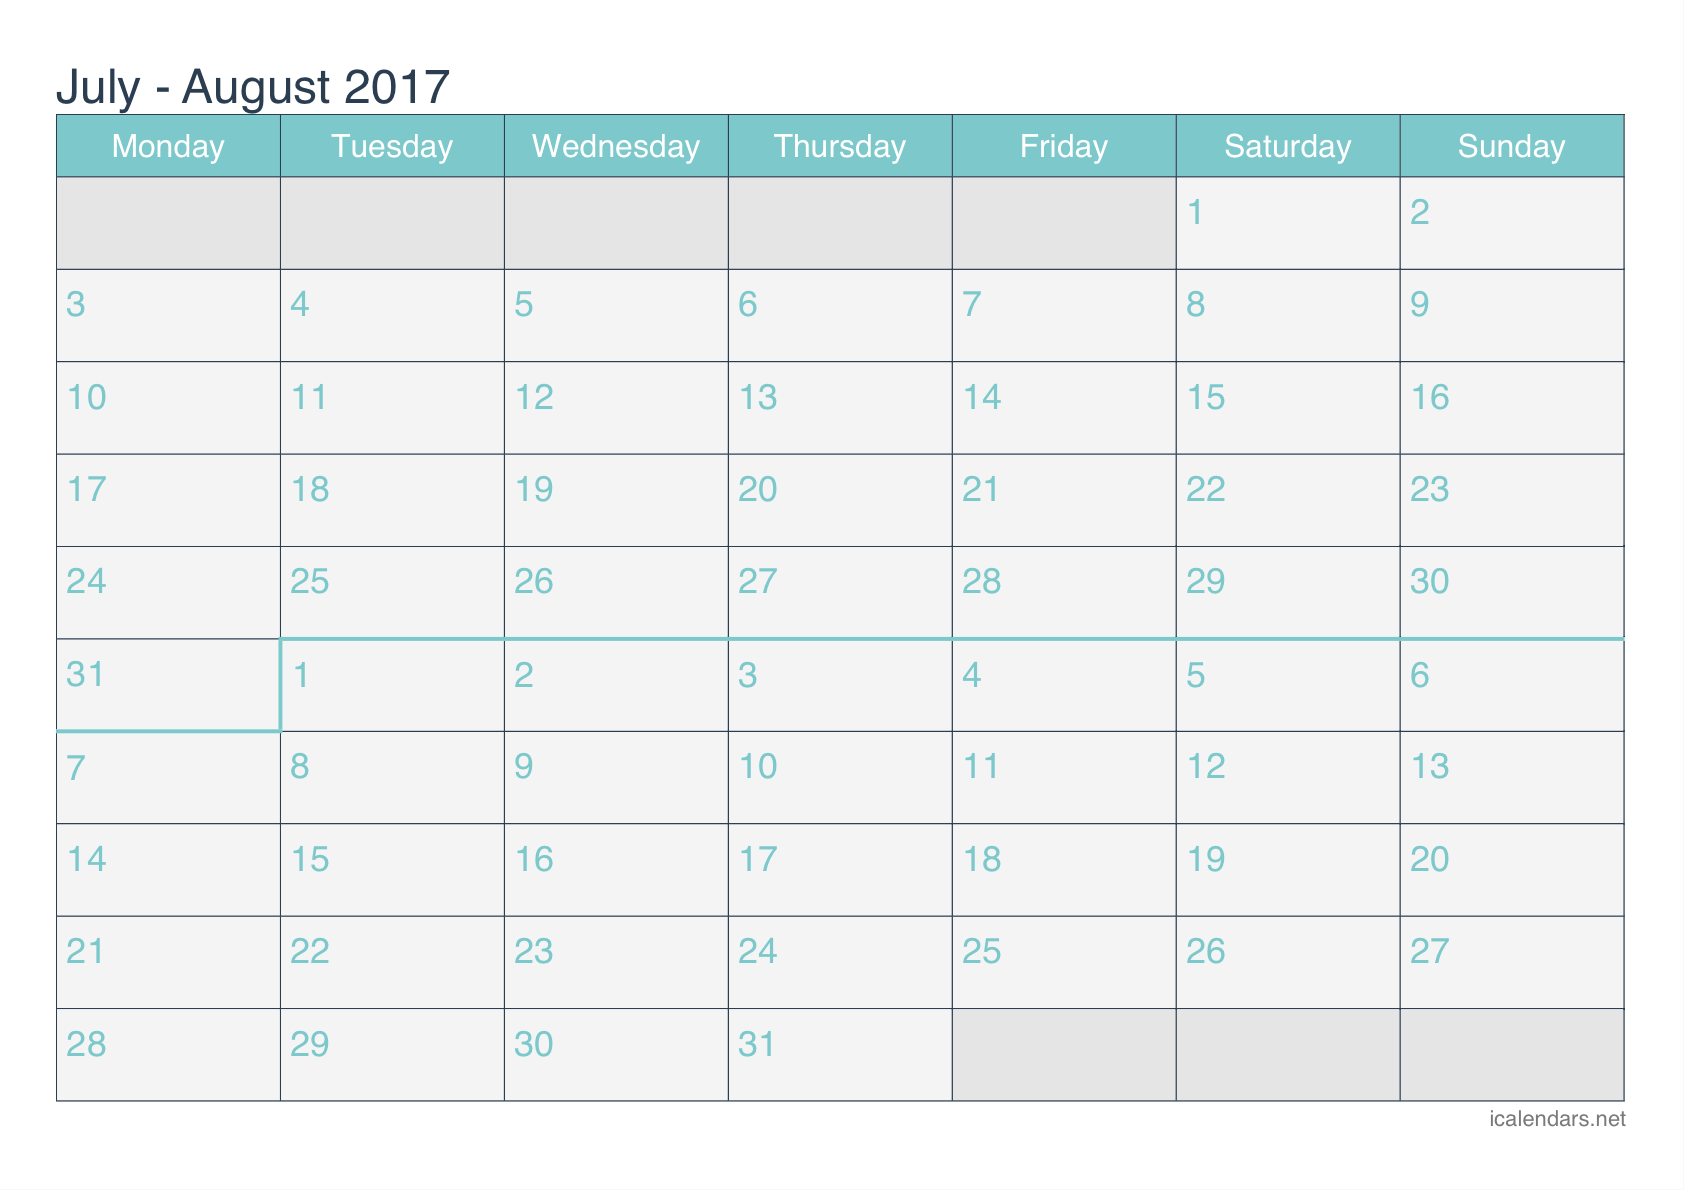 October 2017 Calendar Excel - bestcalendarprintable.com